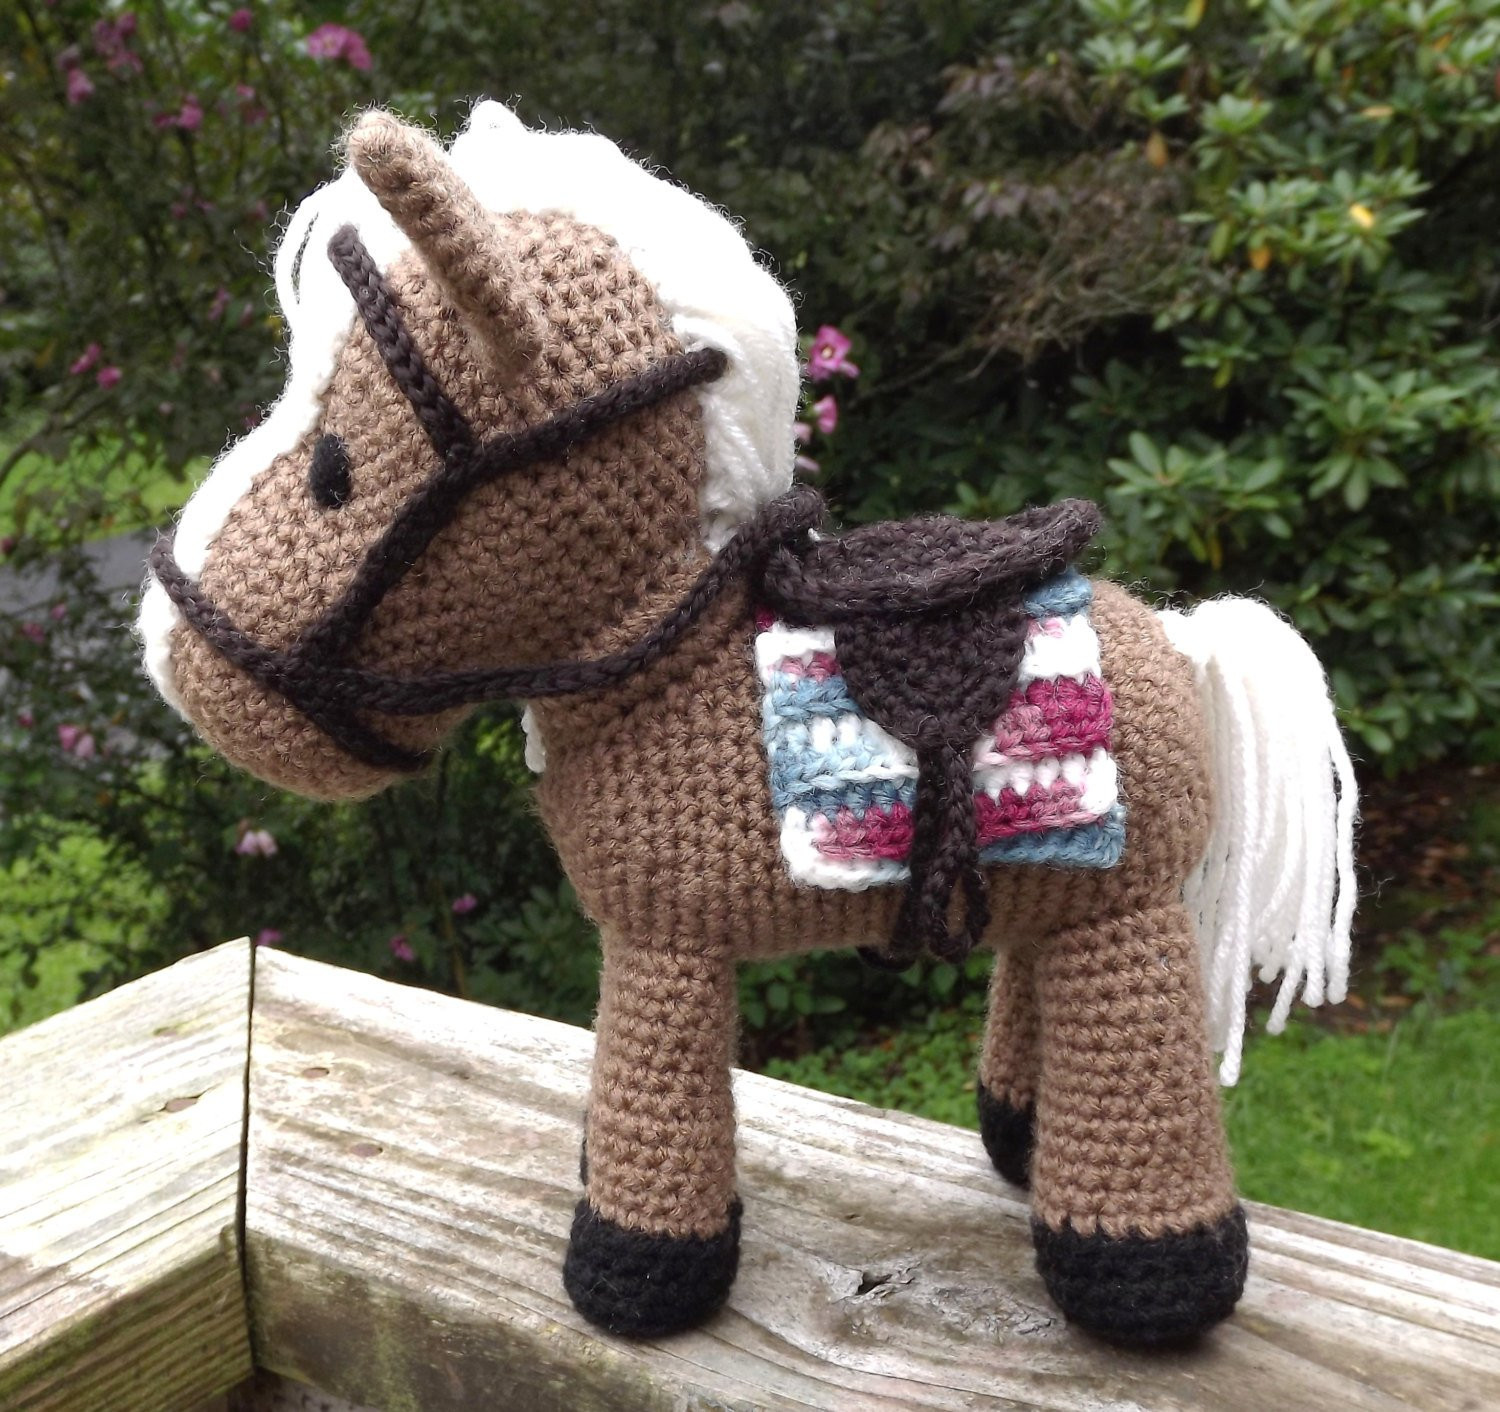 New Horse Amigurumi Pattern with Removable Saddle Saddle Blanket Free Crochet Horse Pattern Of Charming 47 Ideas Free Crochet Horse Pattern